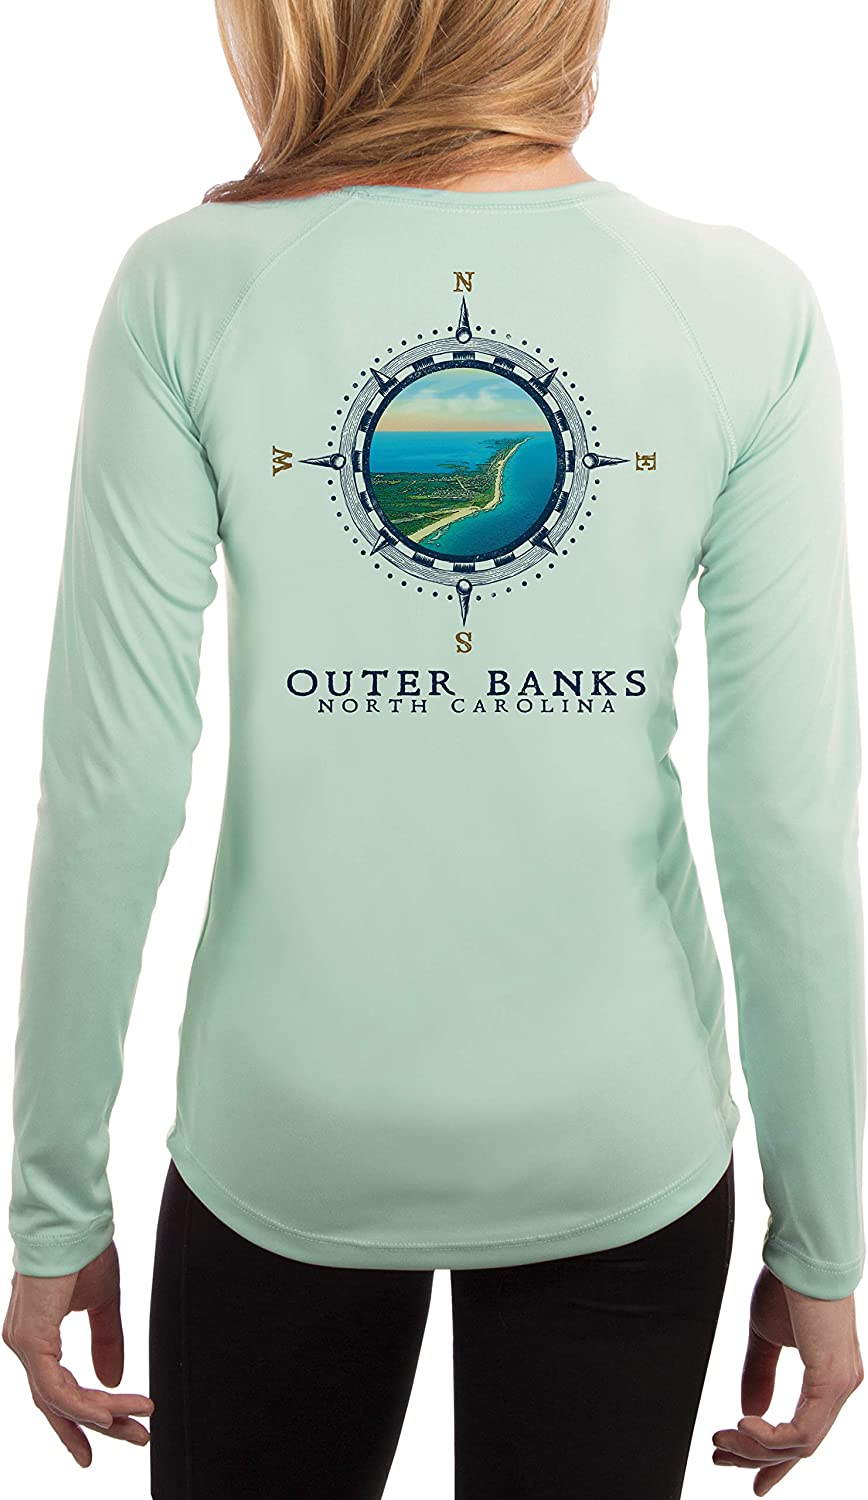 Compass Vintage Max 66% OFF Outer Banks Women's Protection 50+ Ranking TOP3 Sun UPF Long